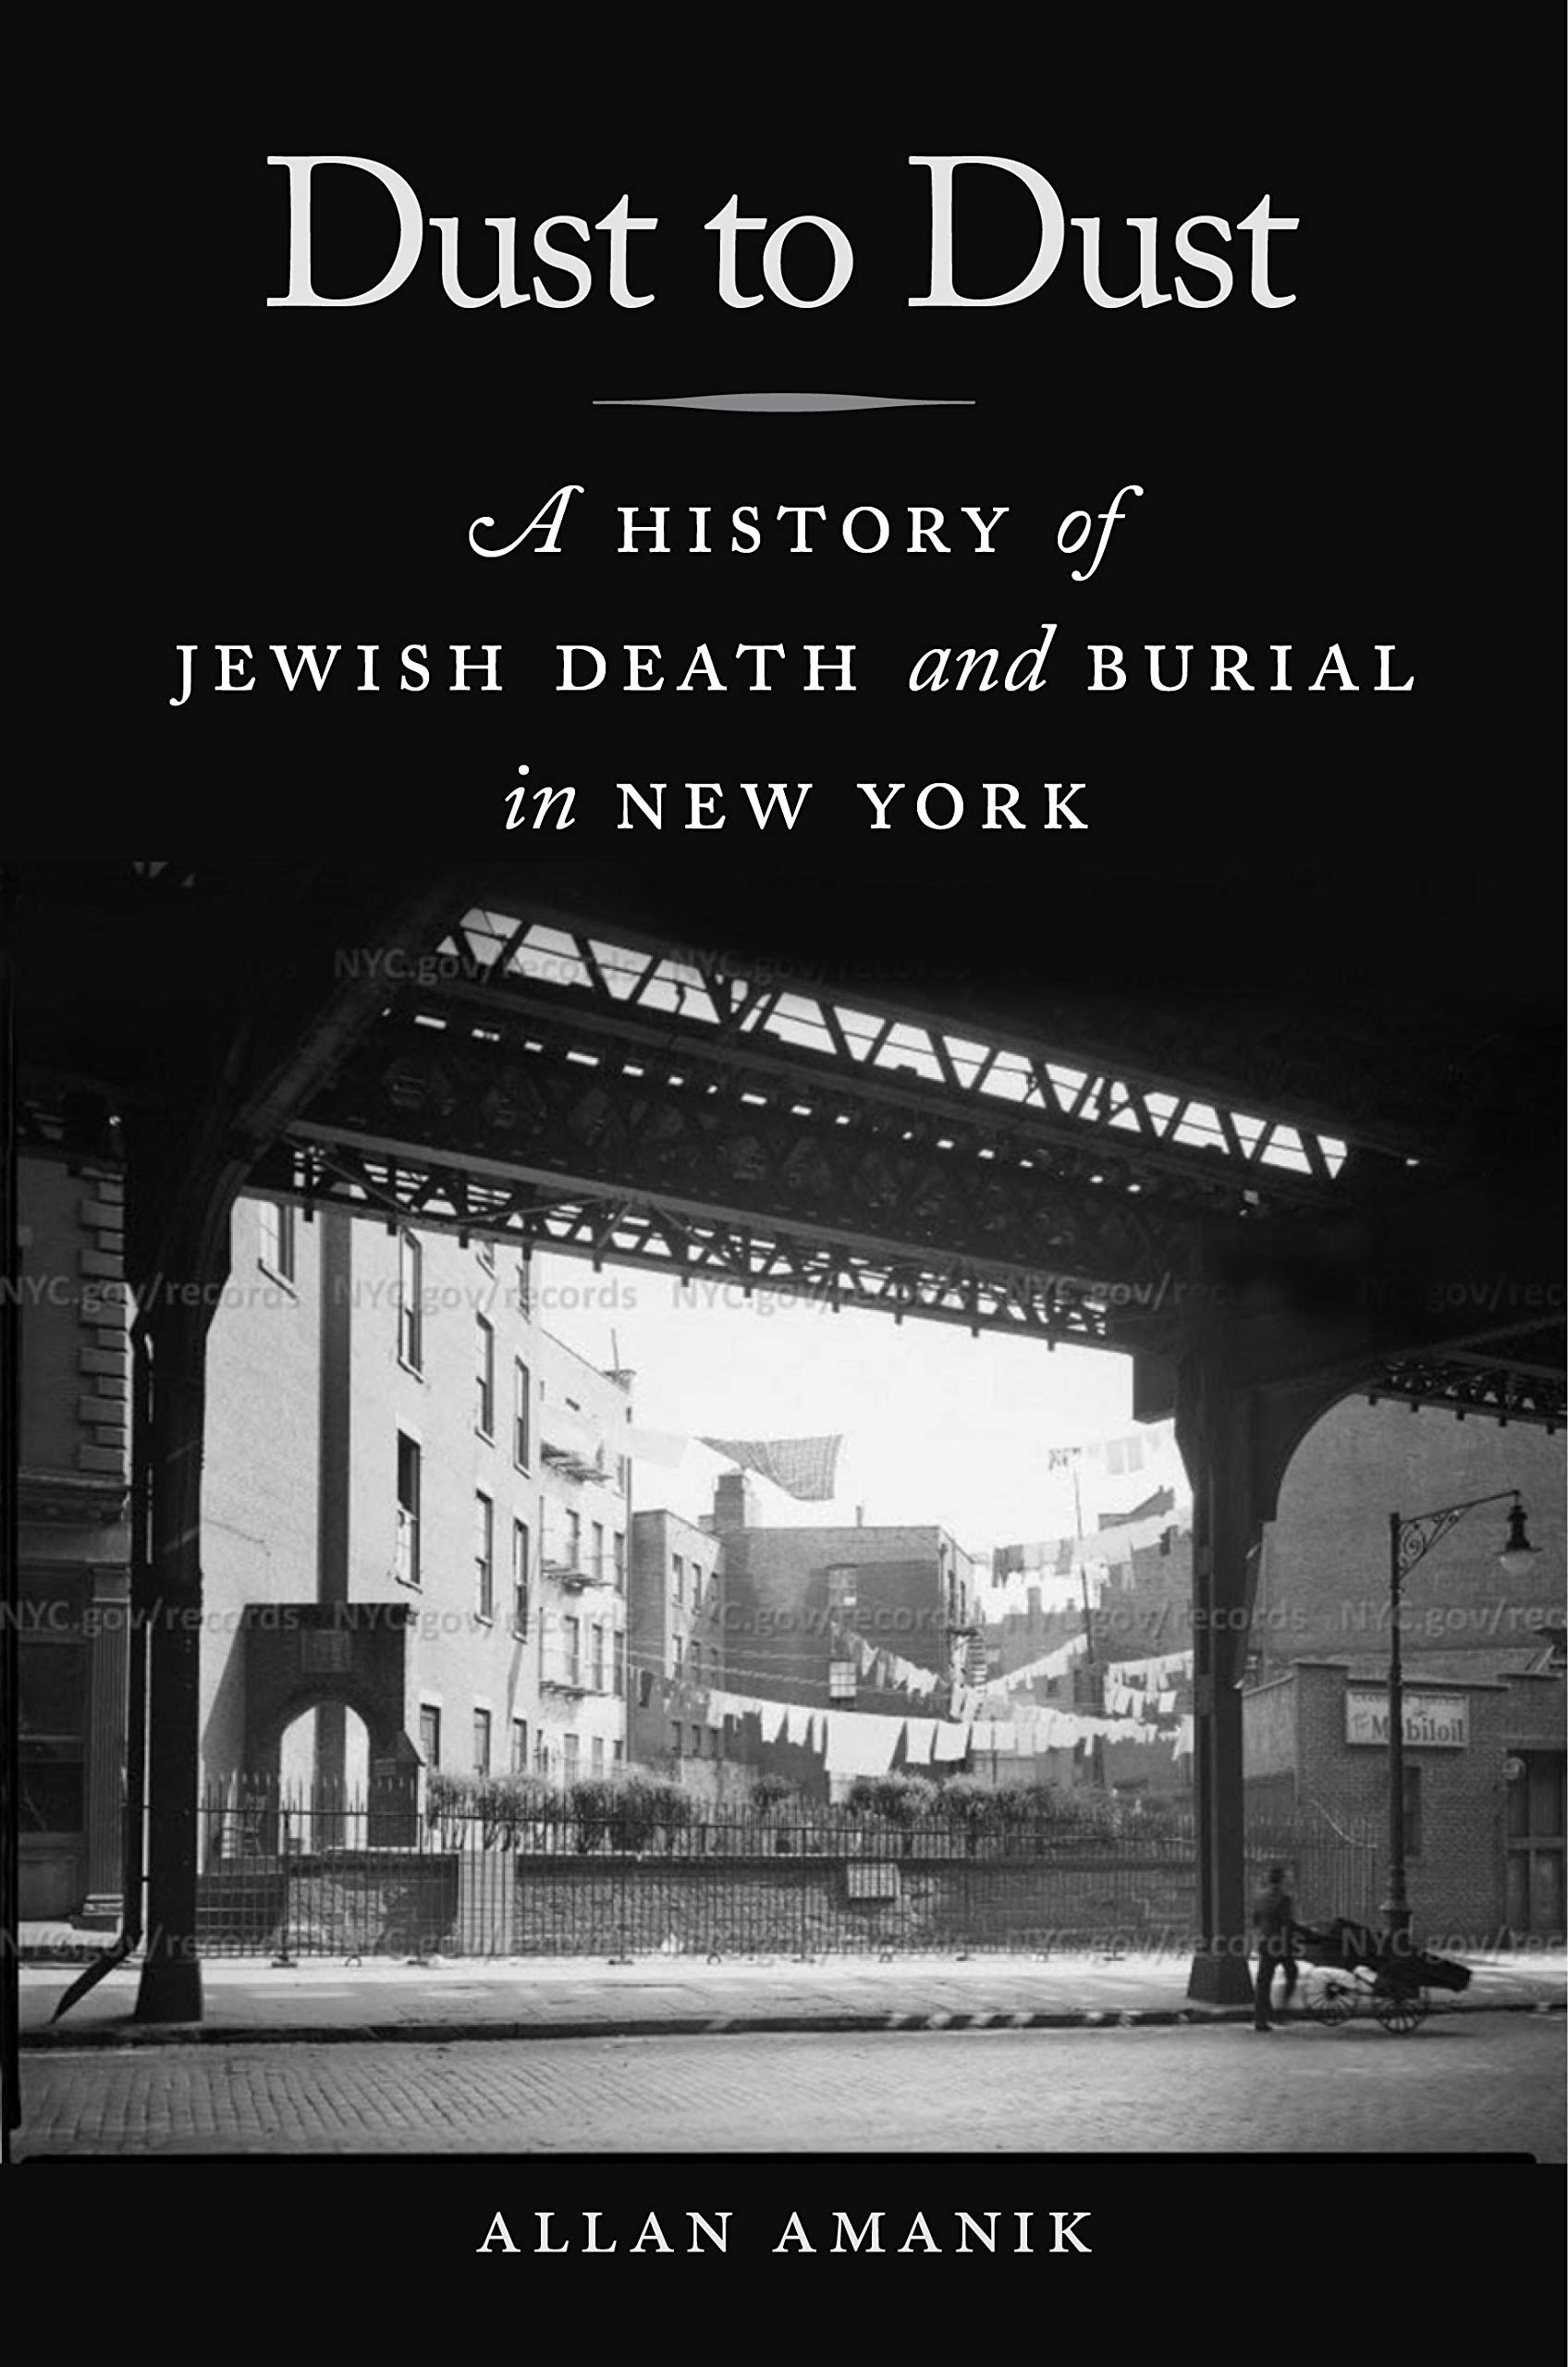 cover of Allan Amanik  Dust to Dust: A History of Jewish Death and Burial in New York. NYU Press, 2019.  F128.9 .J5 A527 2019